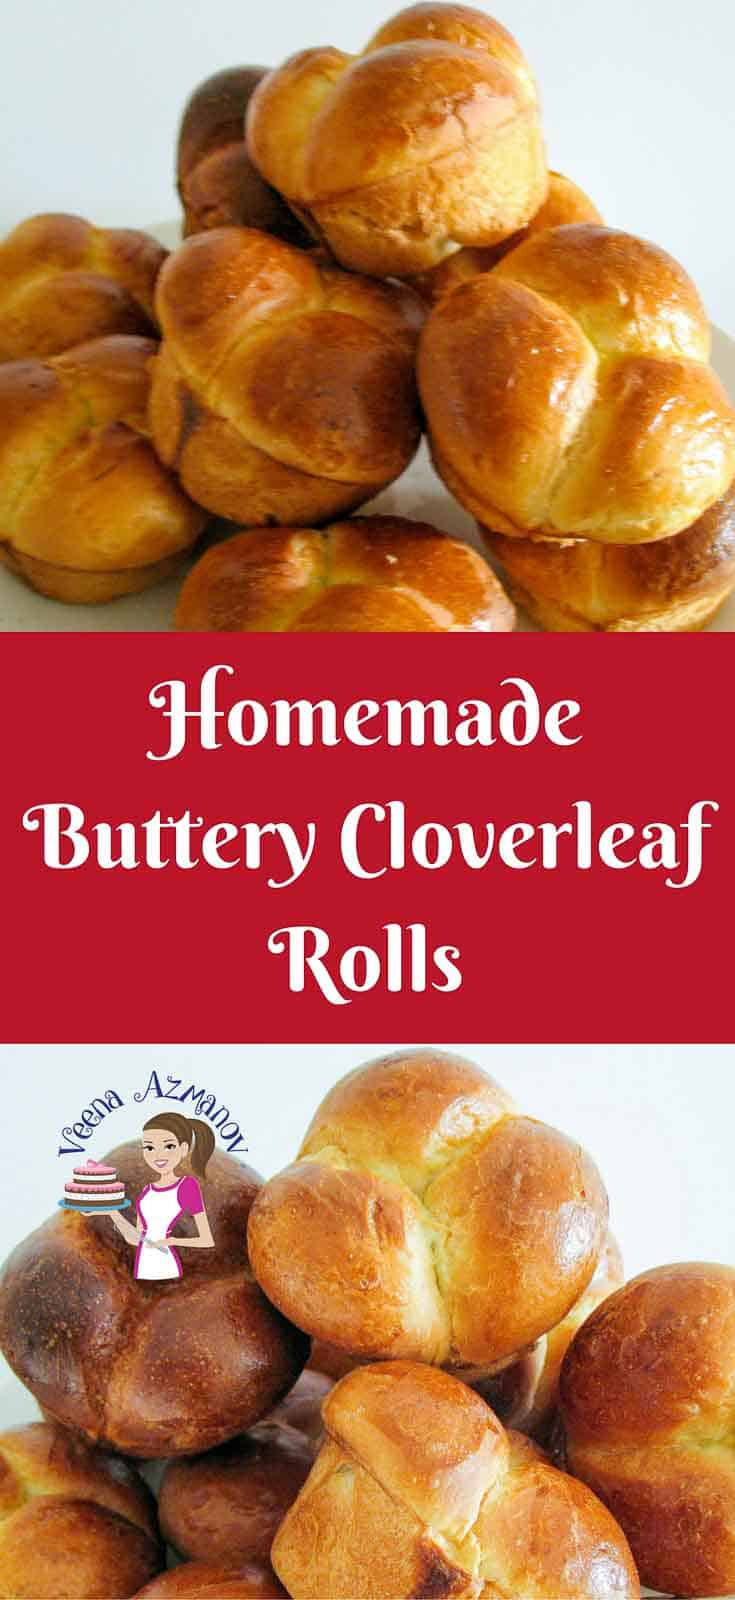 Pinterest Image These soft and buttery homemade Cloverleaf rolls are an absolute treat and very versatile. They pair well with any food sweet or savory. Can be eaten with meal for dinner or for breakfast with some butter and jam.